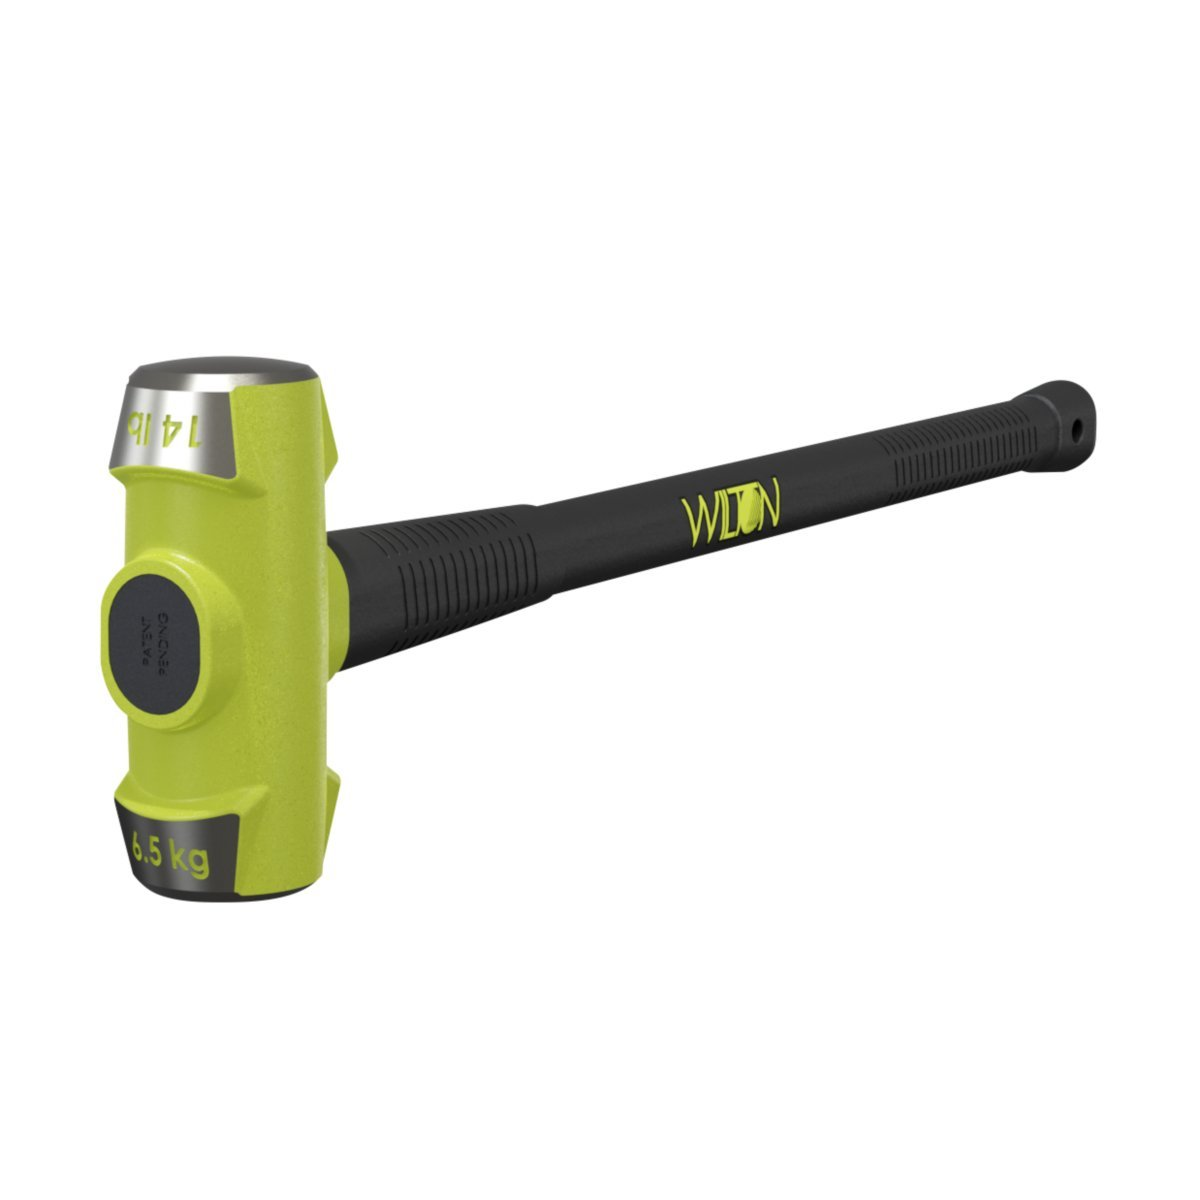 Wilton 21436 14 lb. BASH Sledge Hammer with 36-in Unbreakable Handle